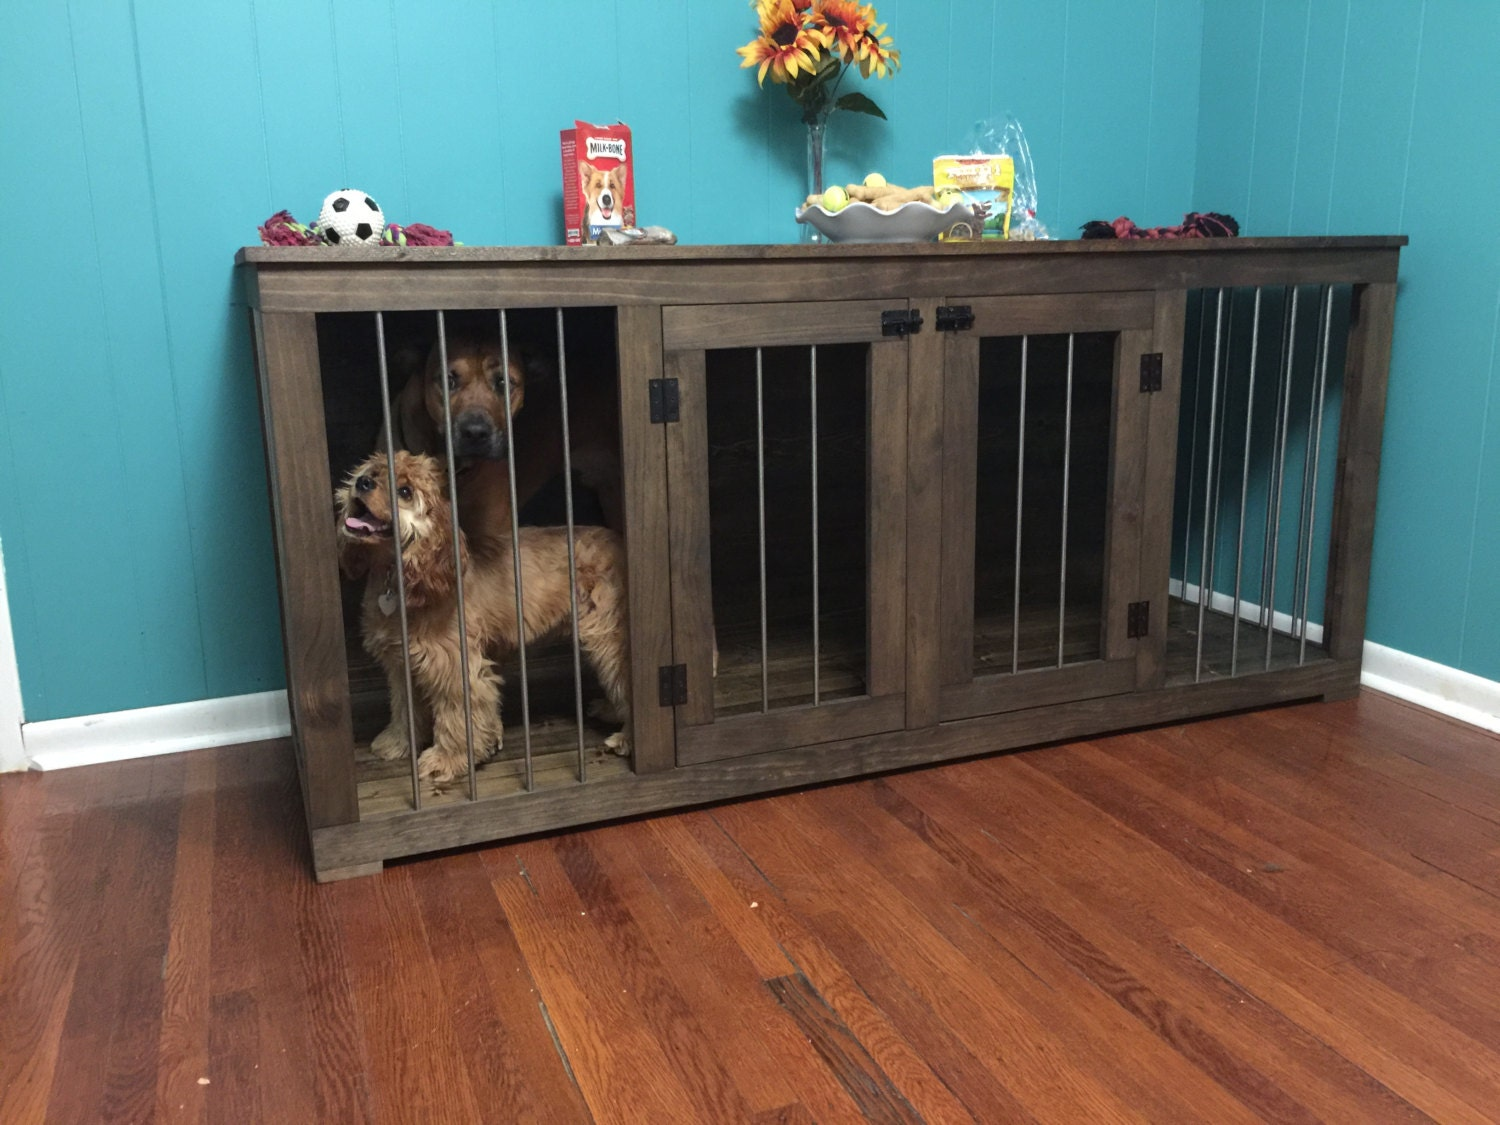 Dog Kennel Etsy Home Interior Catalog, Interior Design Ideas, Design,  Interior Decoration,